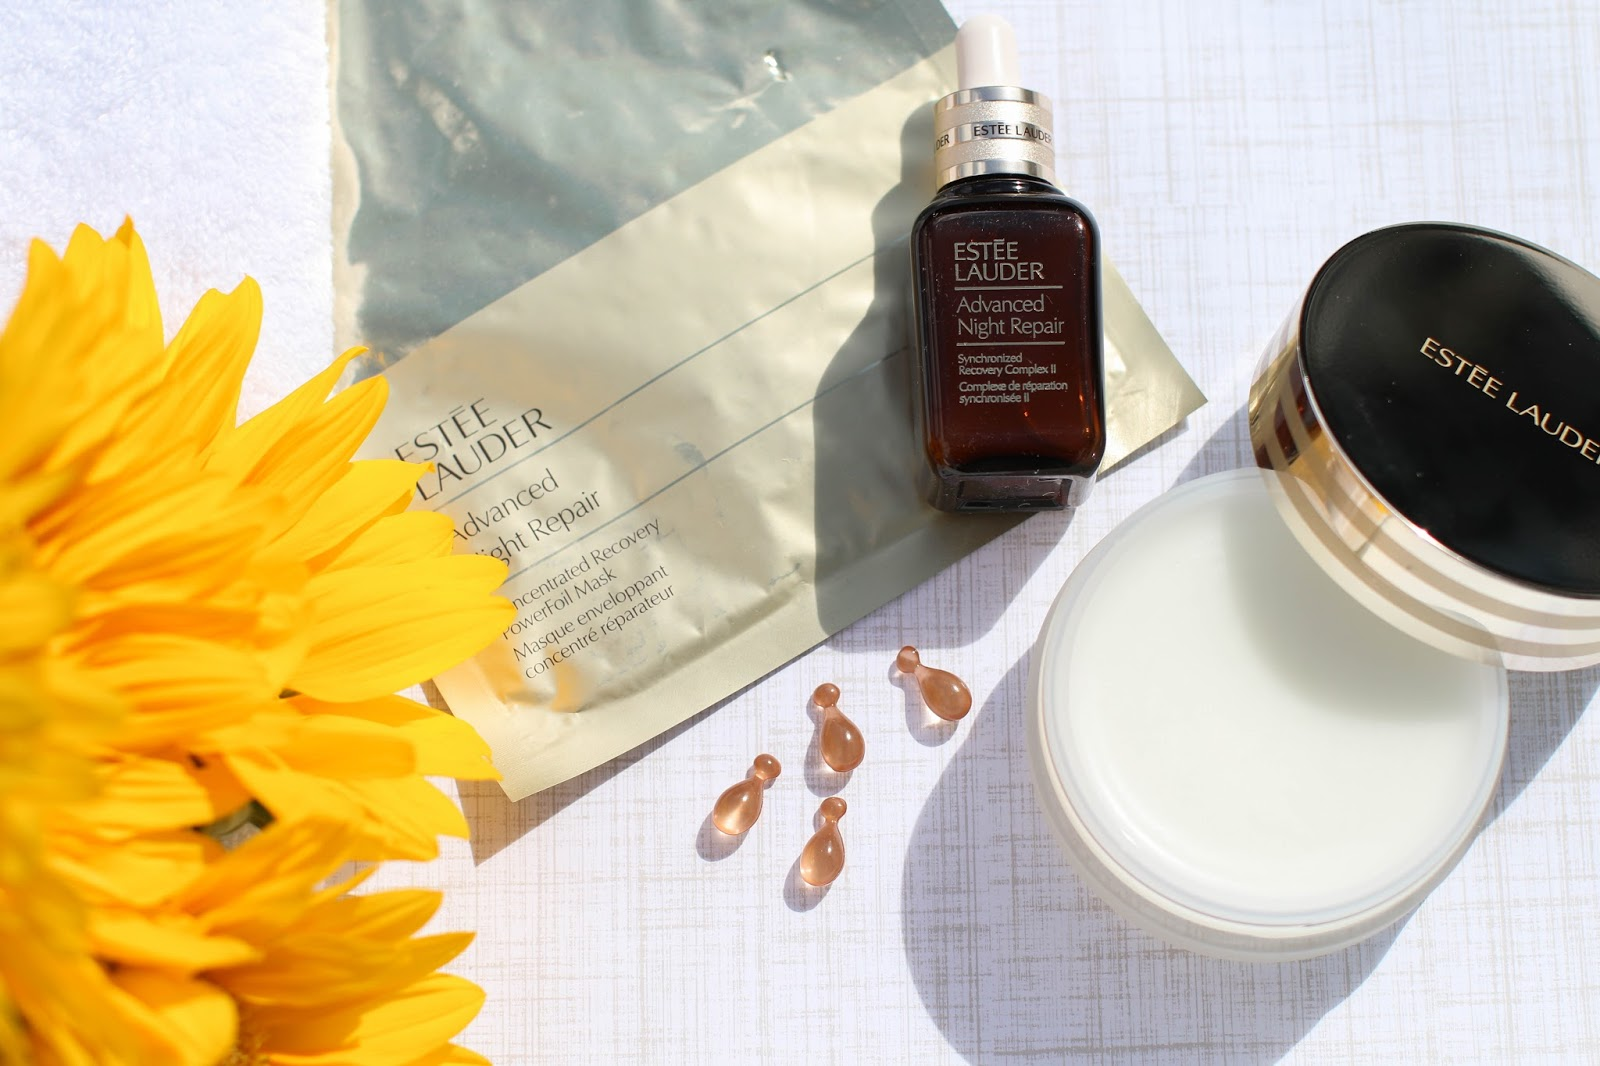 Estee Lauder Advanced Night Repair Collection Review